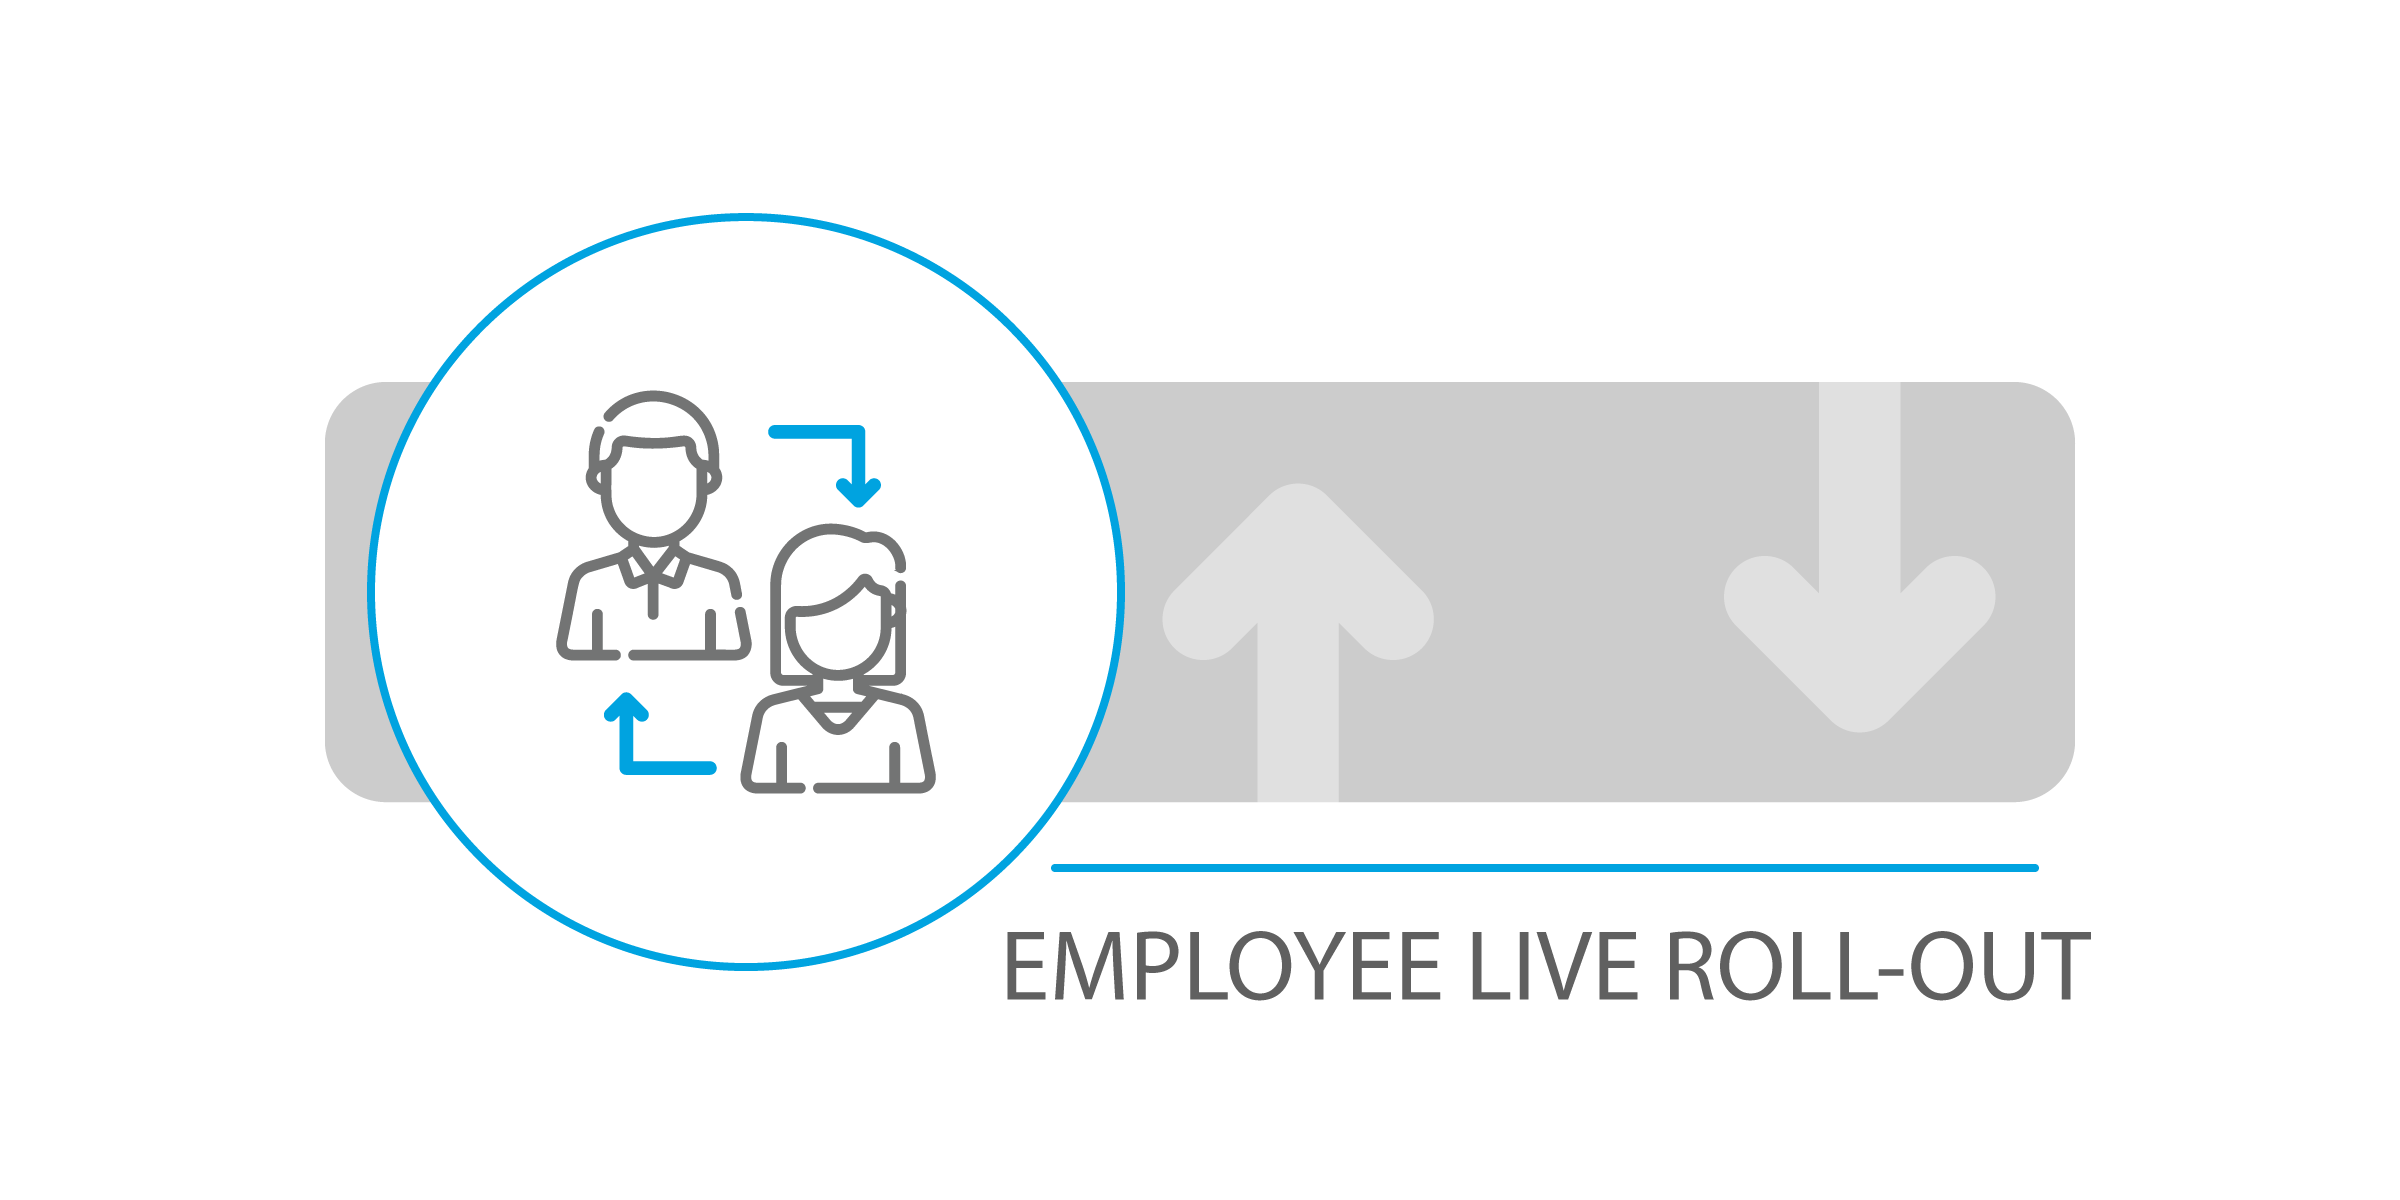 Employee Live Roll-Out image